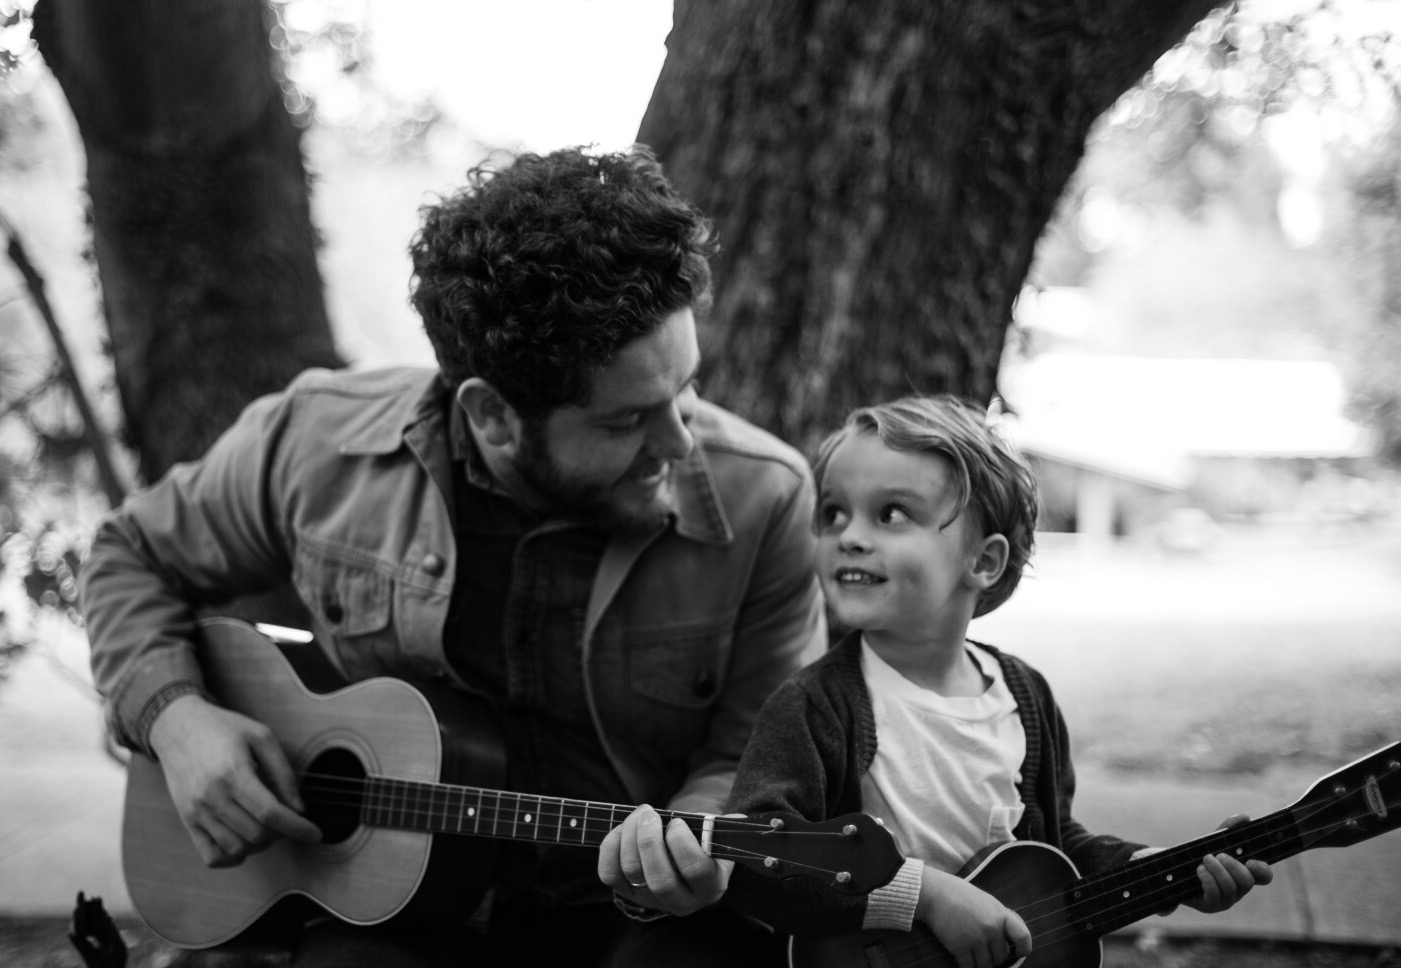 Josh Lovelace and his son Henry